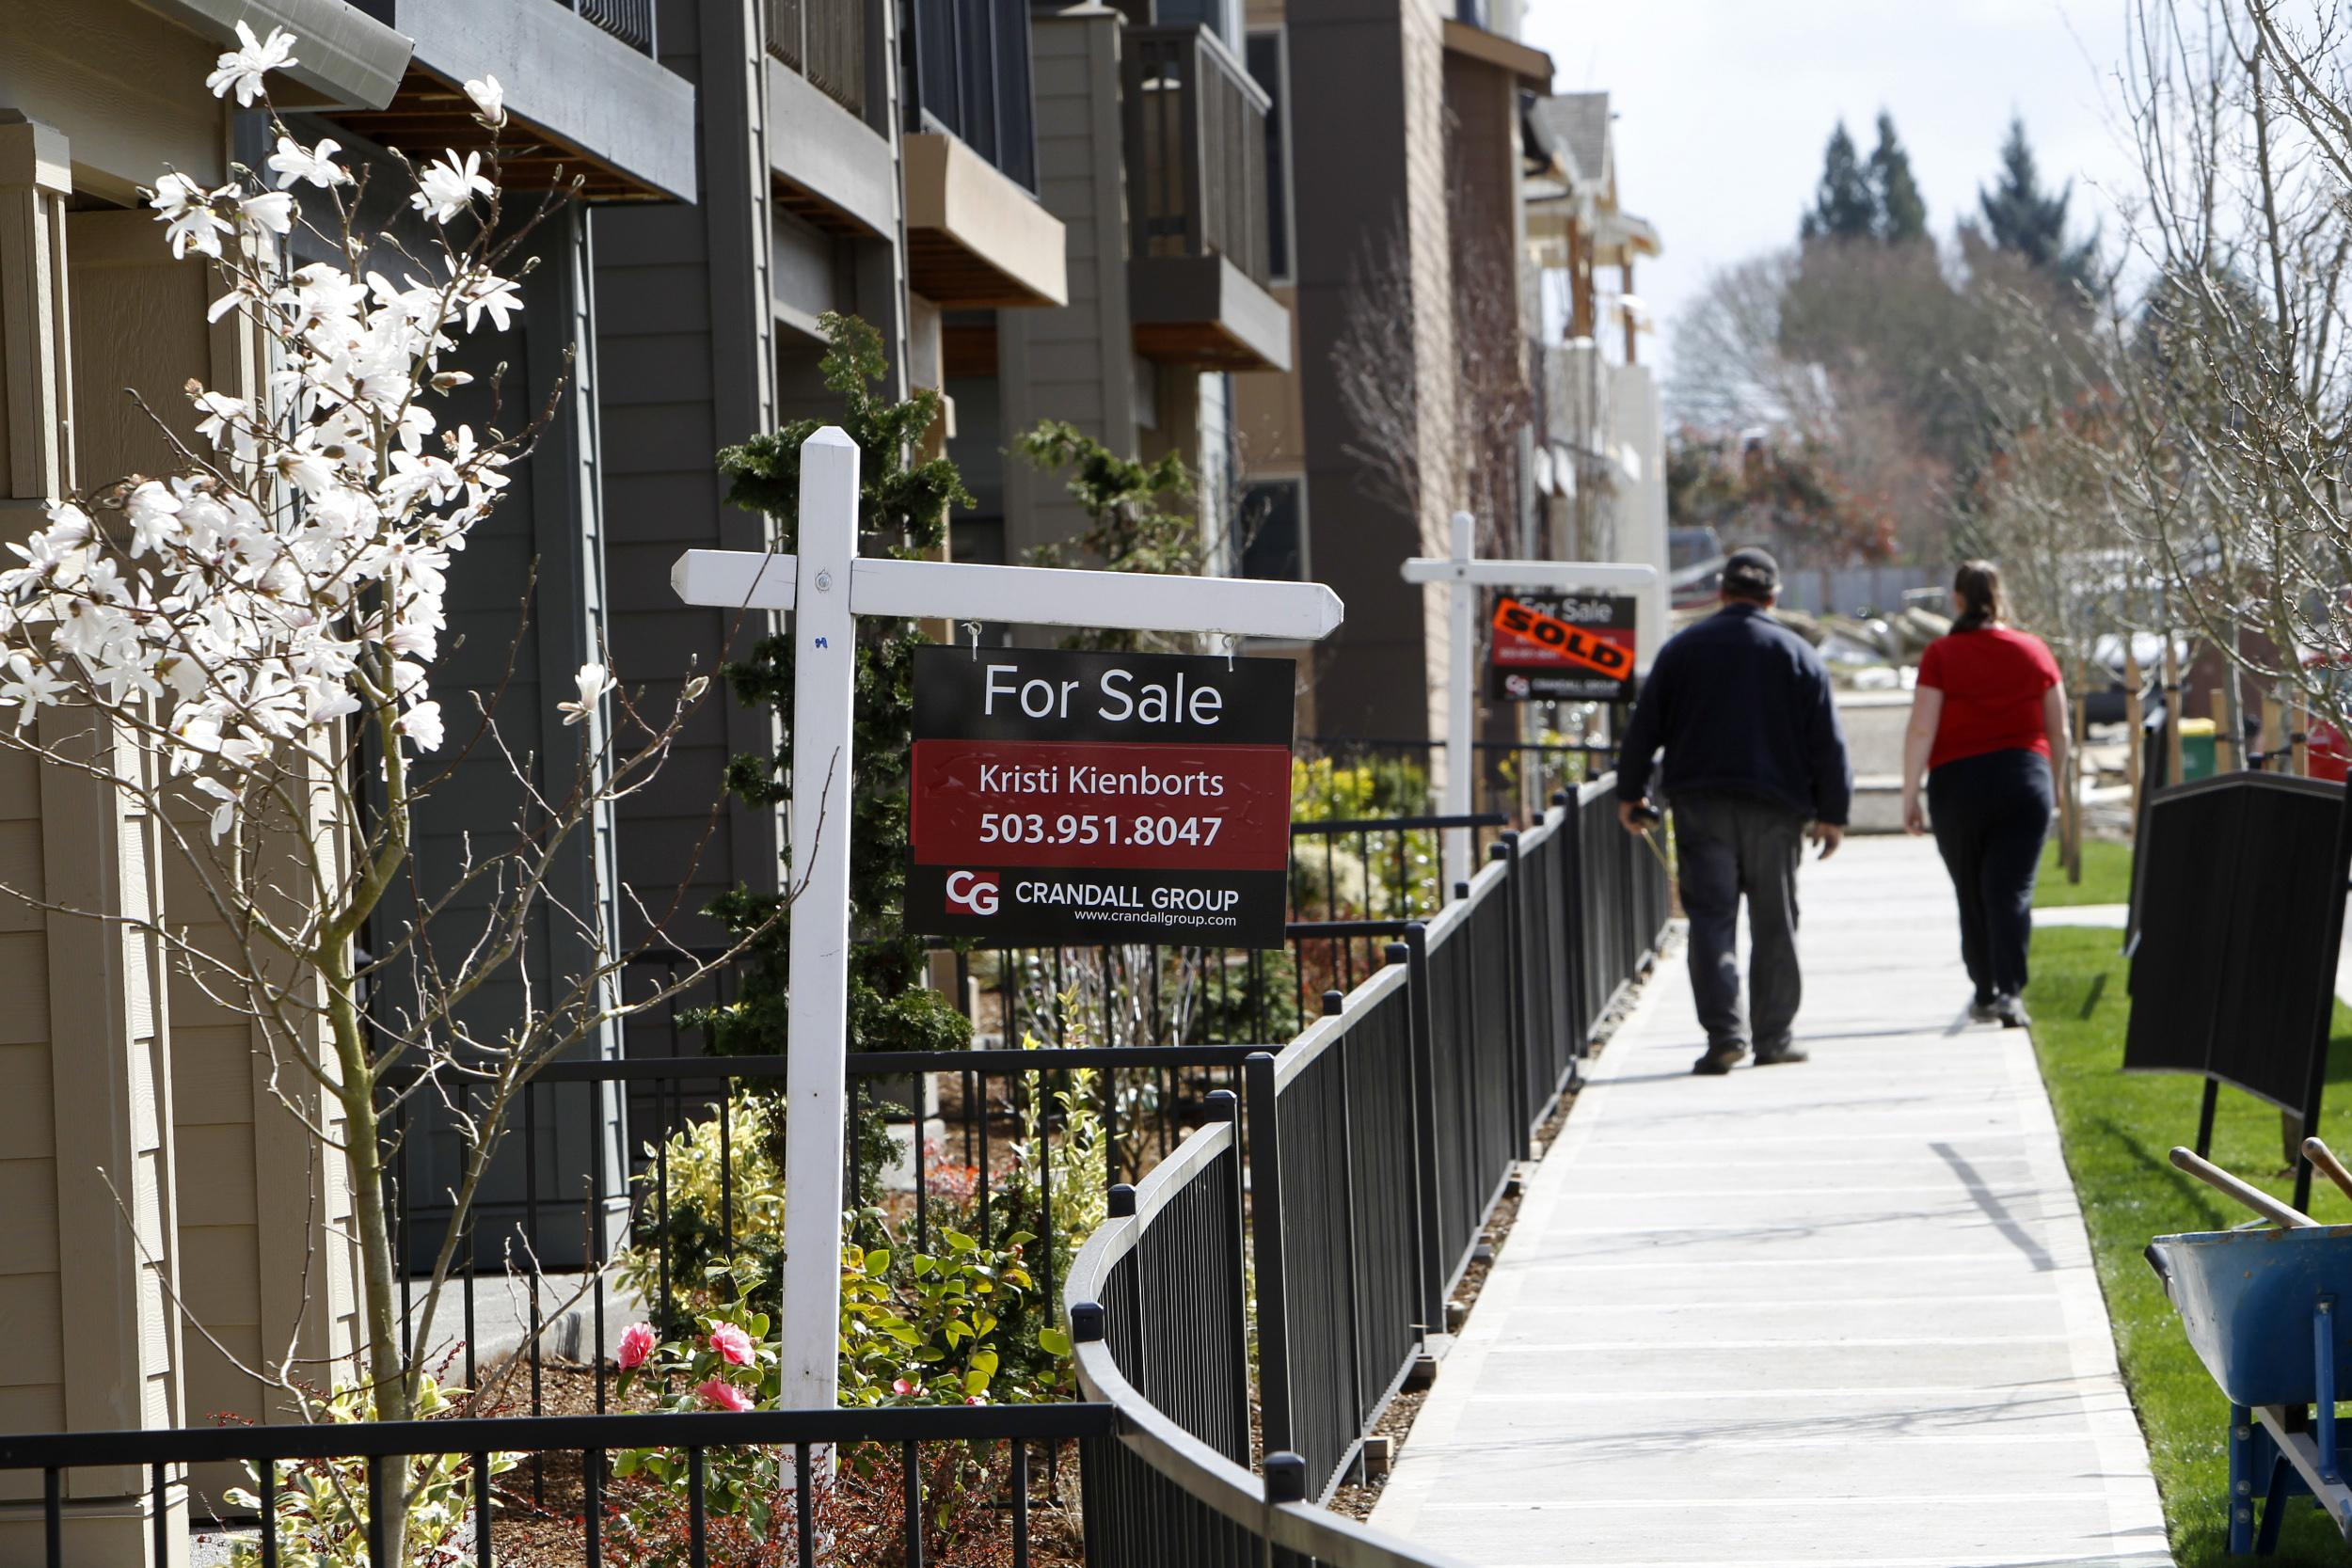 U.S. mortgage applications fall from 33-month high